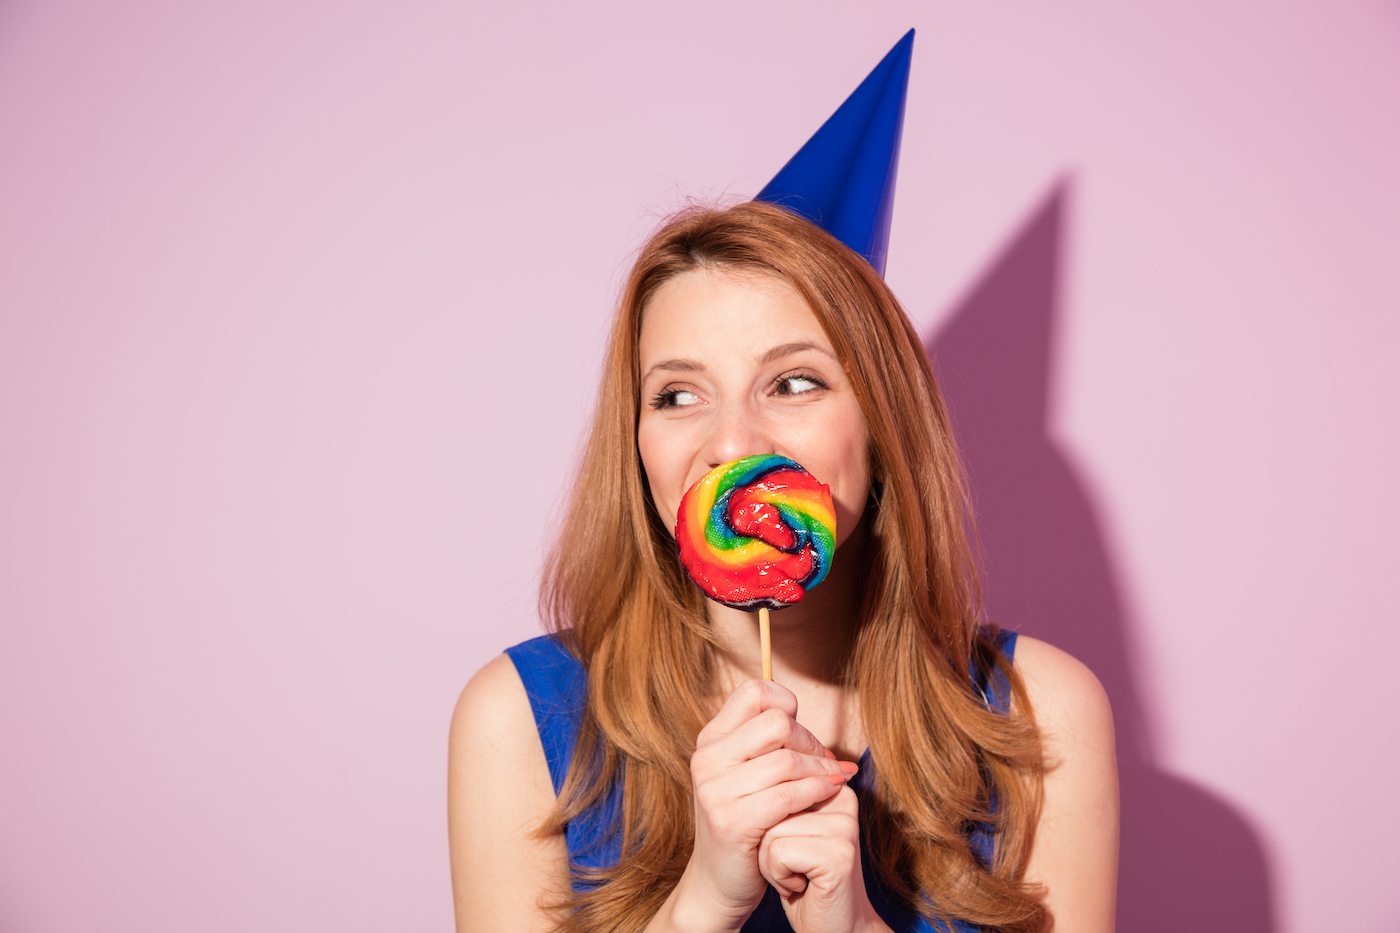 10 ways to help someone have the happiest birthday during the coronavirus crisis